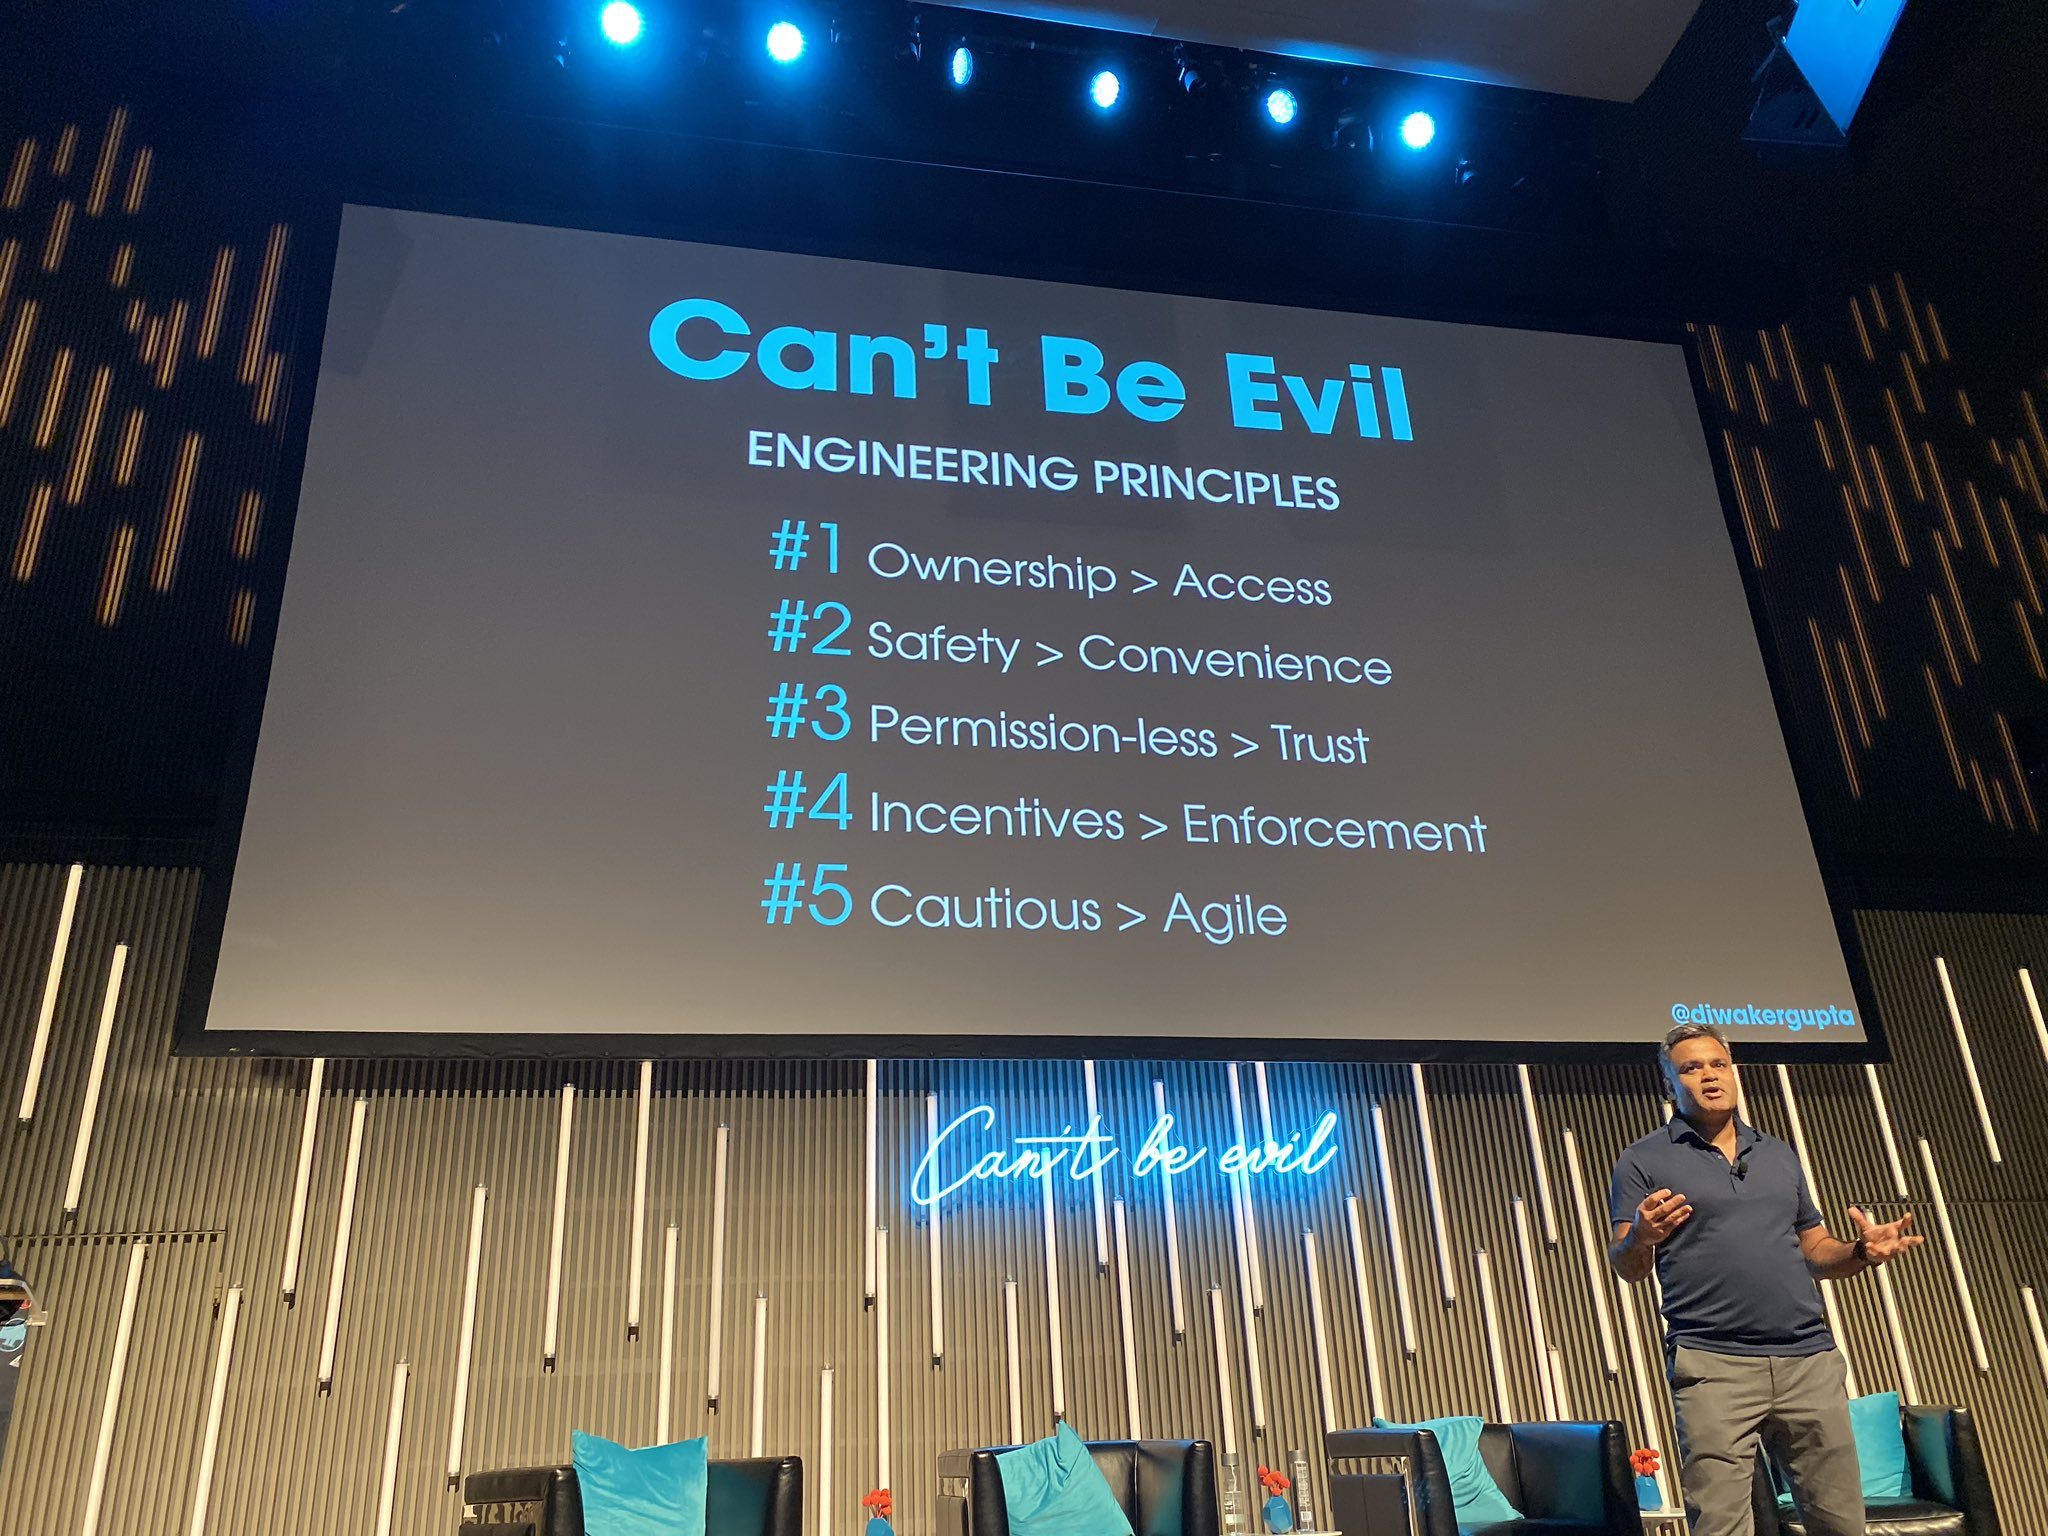 Blockstack PBC Head of Engineering, Diwaker Gupta, discussing the principles of Can't Be Evil